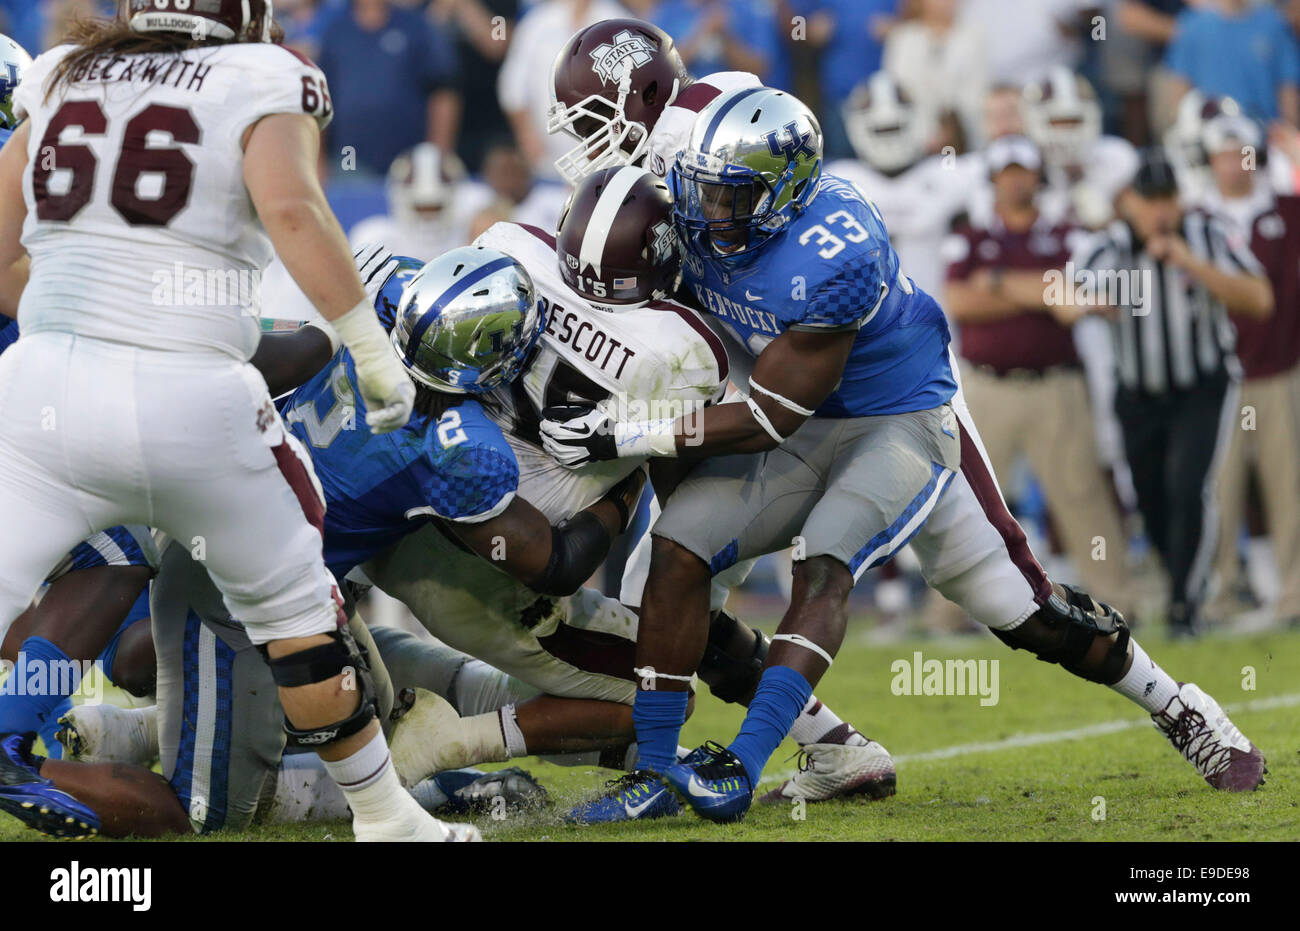 Oct. 25, 2014 - Lexington, Ky, US - Kentucky's Alvin Dupree (2) and Kentucky's Ryan Flannigan stopped Mississippi Stock Photo